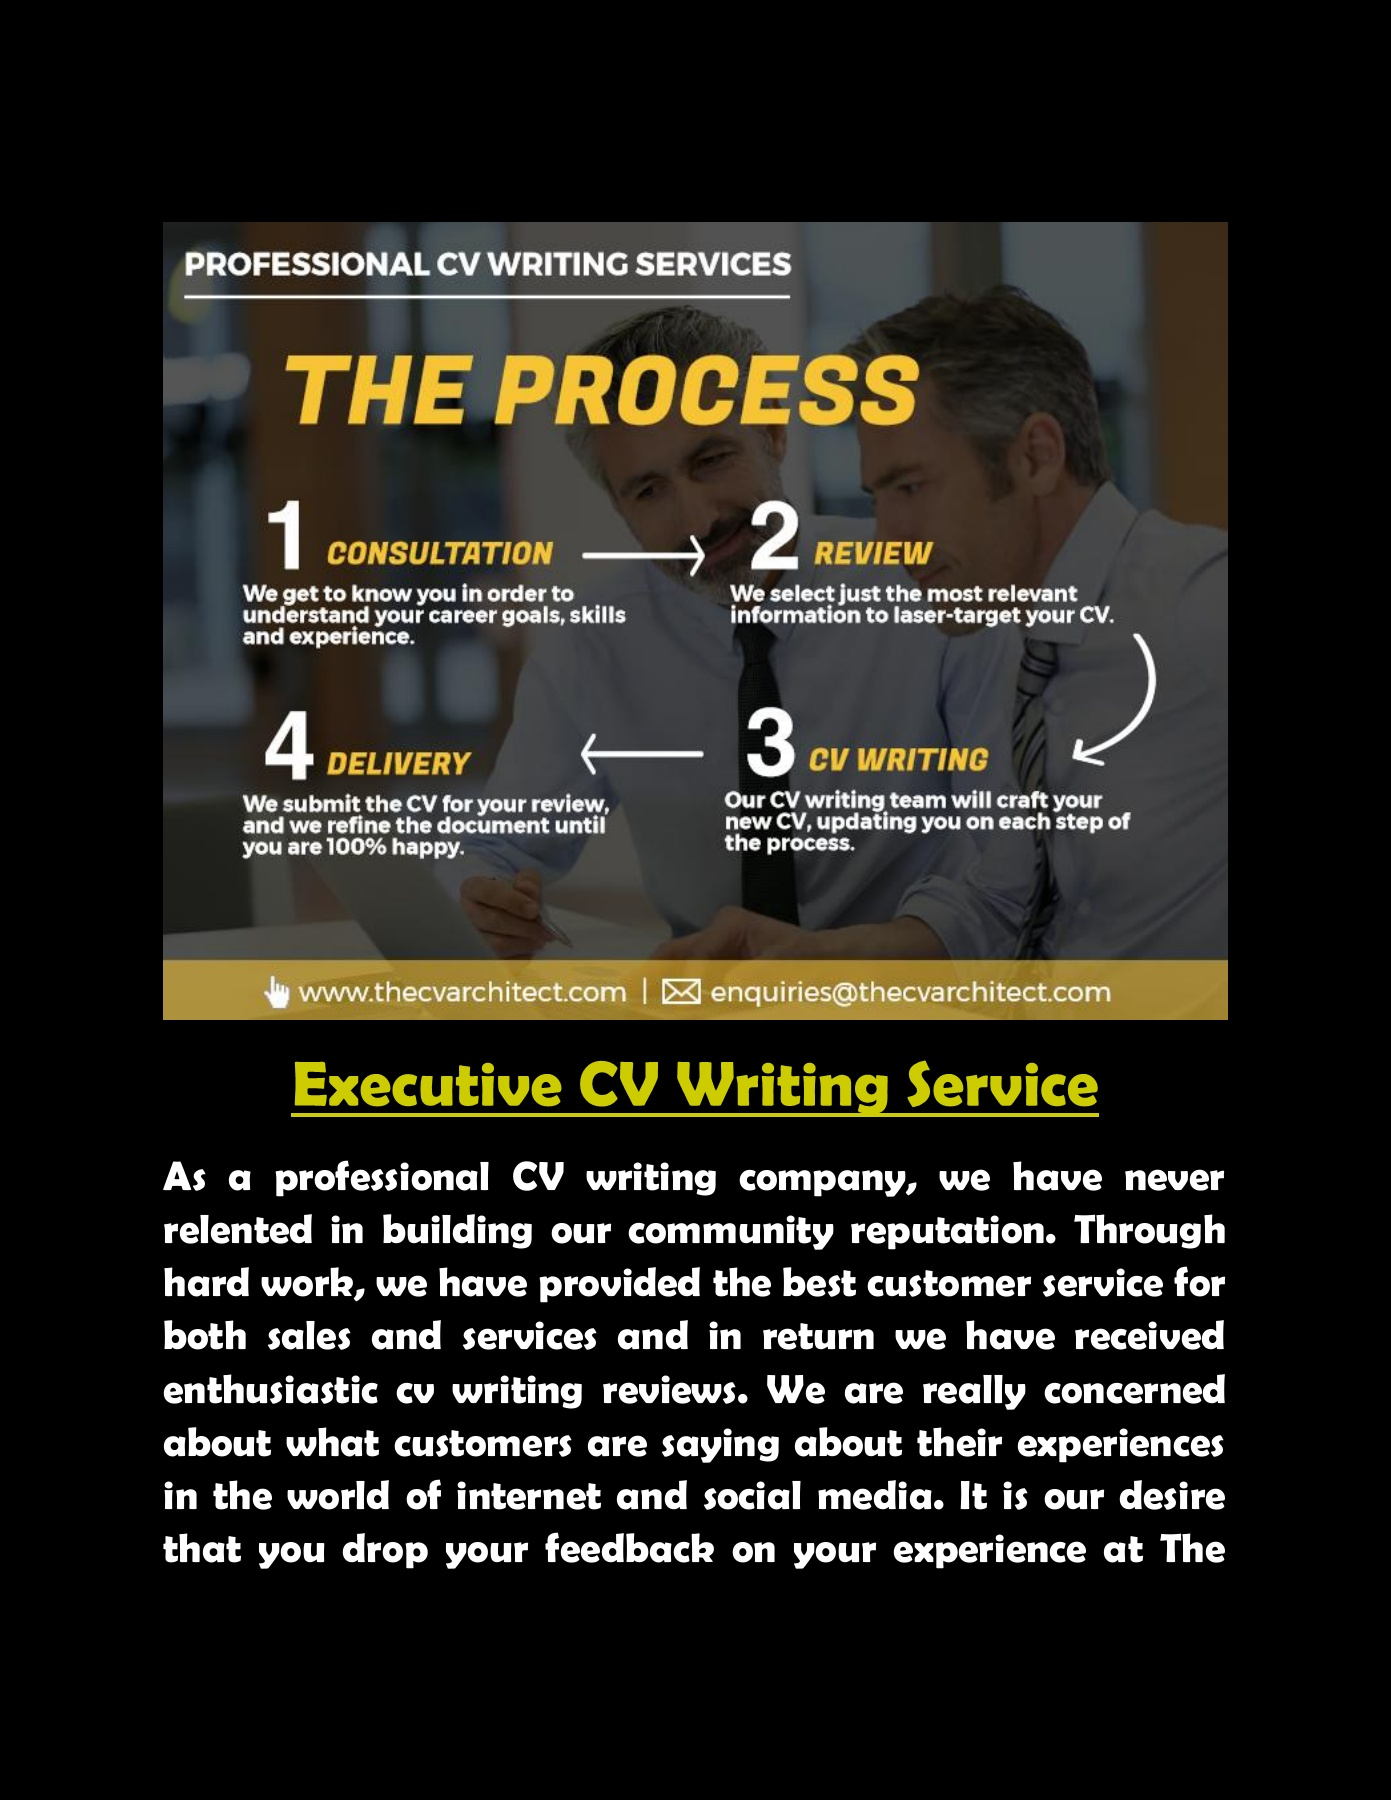 The Best UK CV Writing Services in 2019